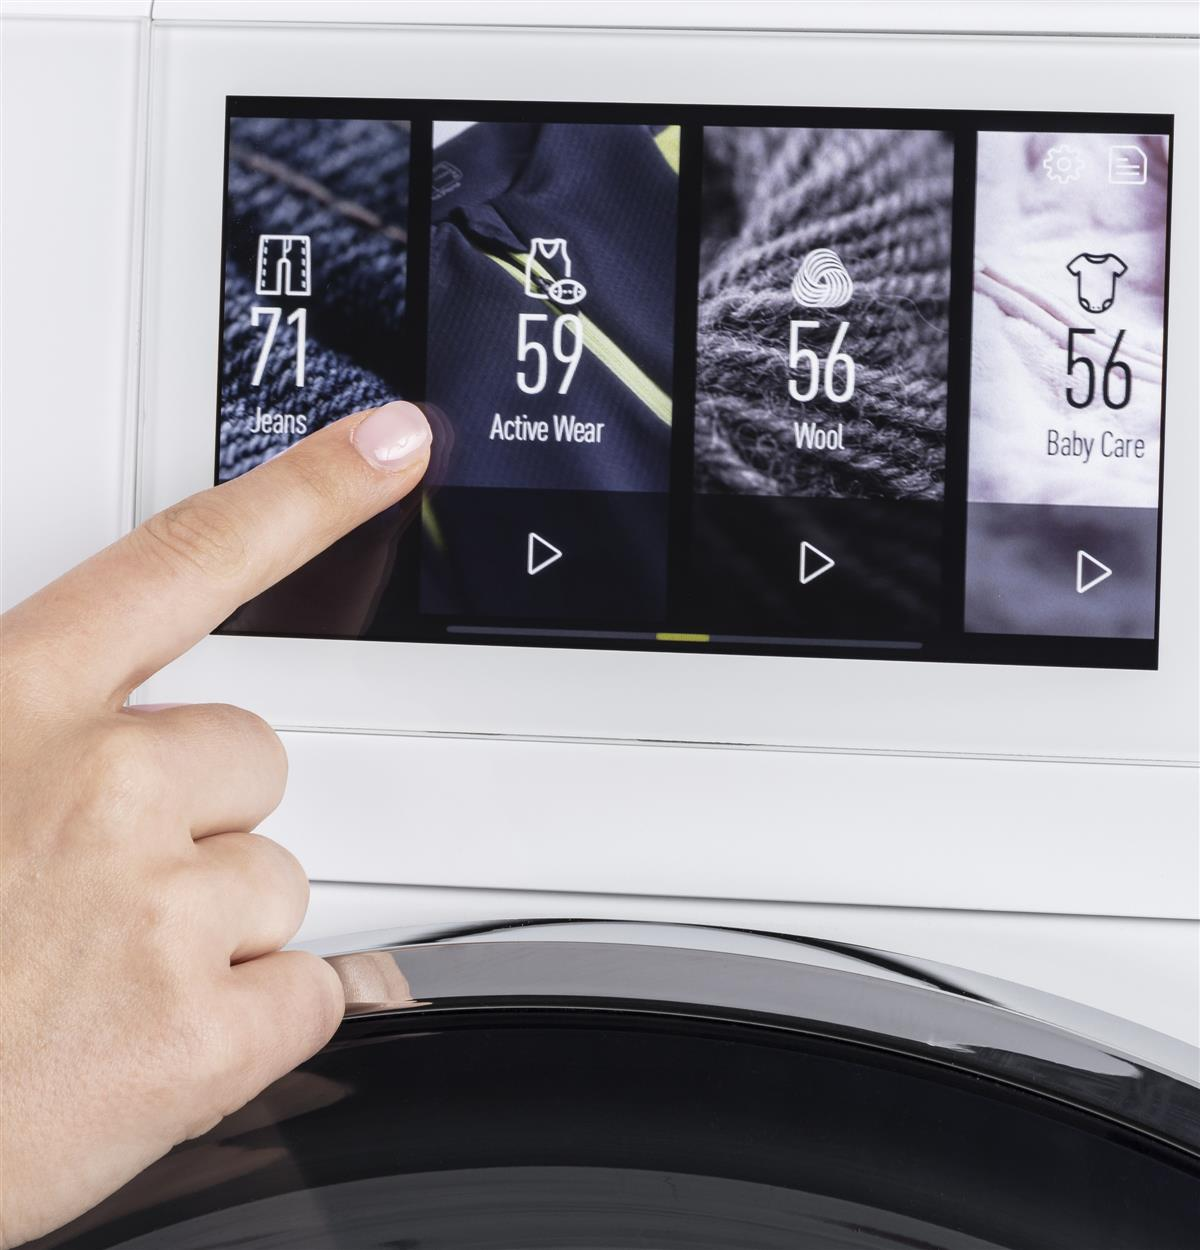 Simple, intuitive, LCD display with touchscreen technology makes operating this washer a breeze